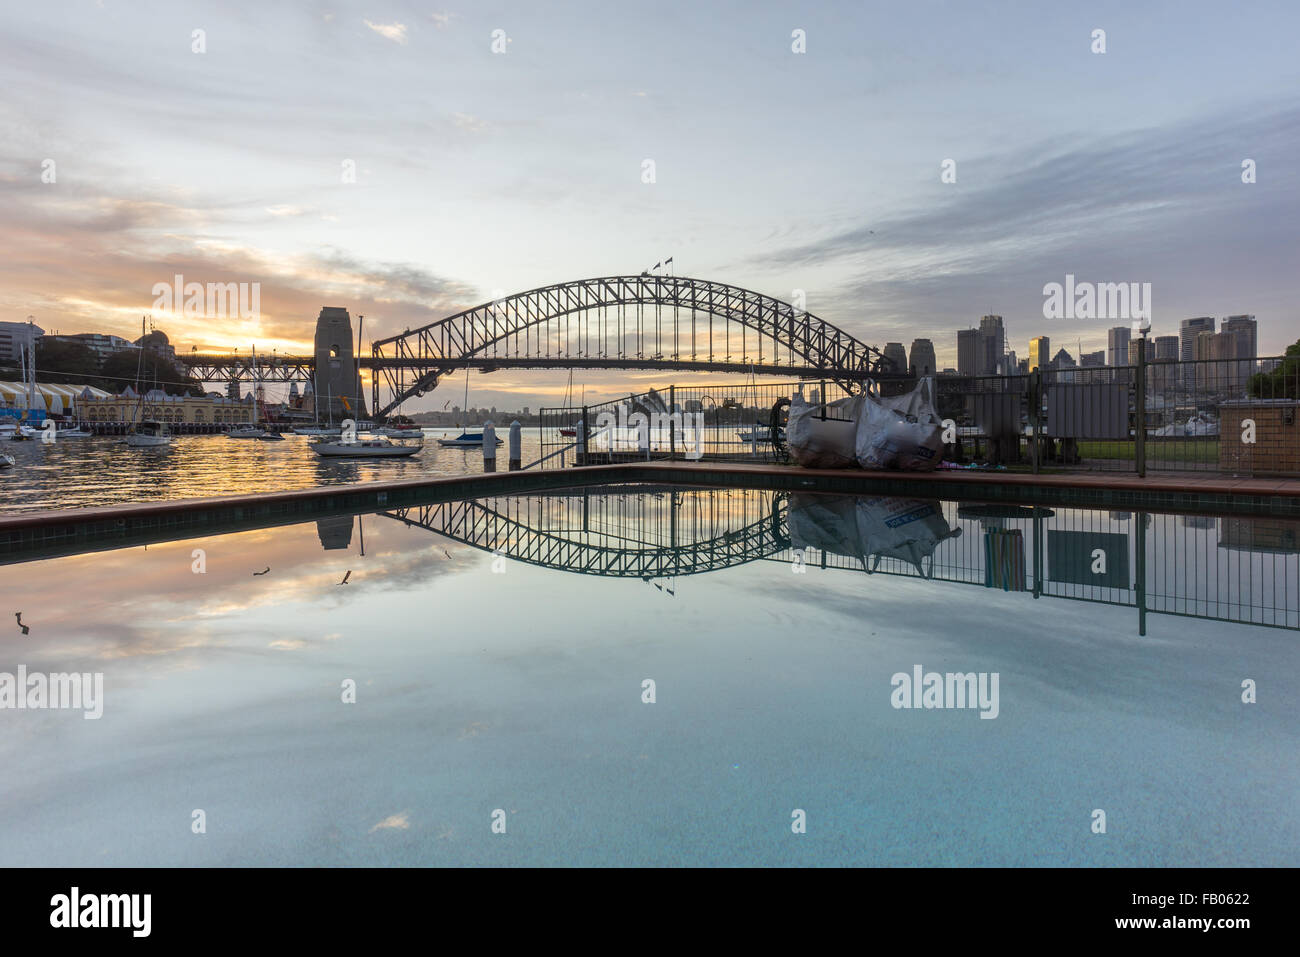 Beautiful sunrise scene at Sydney Harbour Bridge with dramatic sky colour and reflection - Stock Image